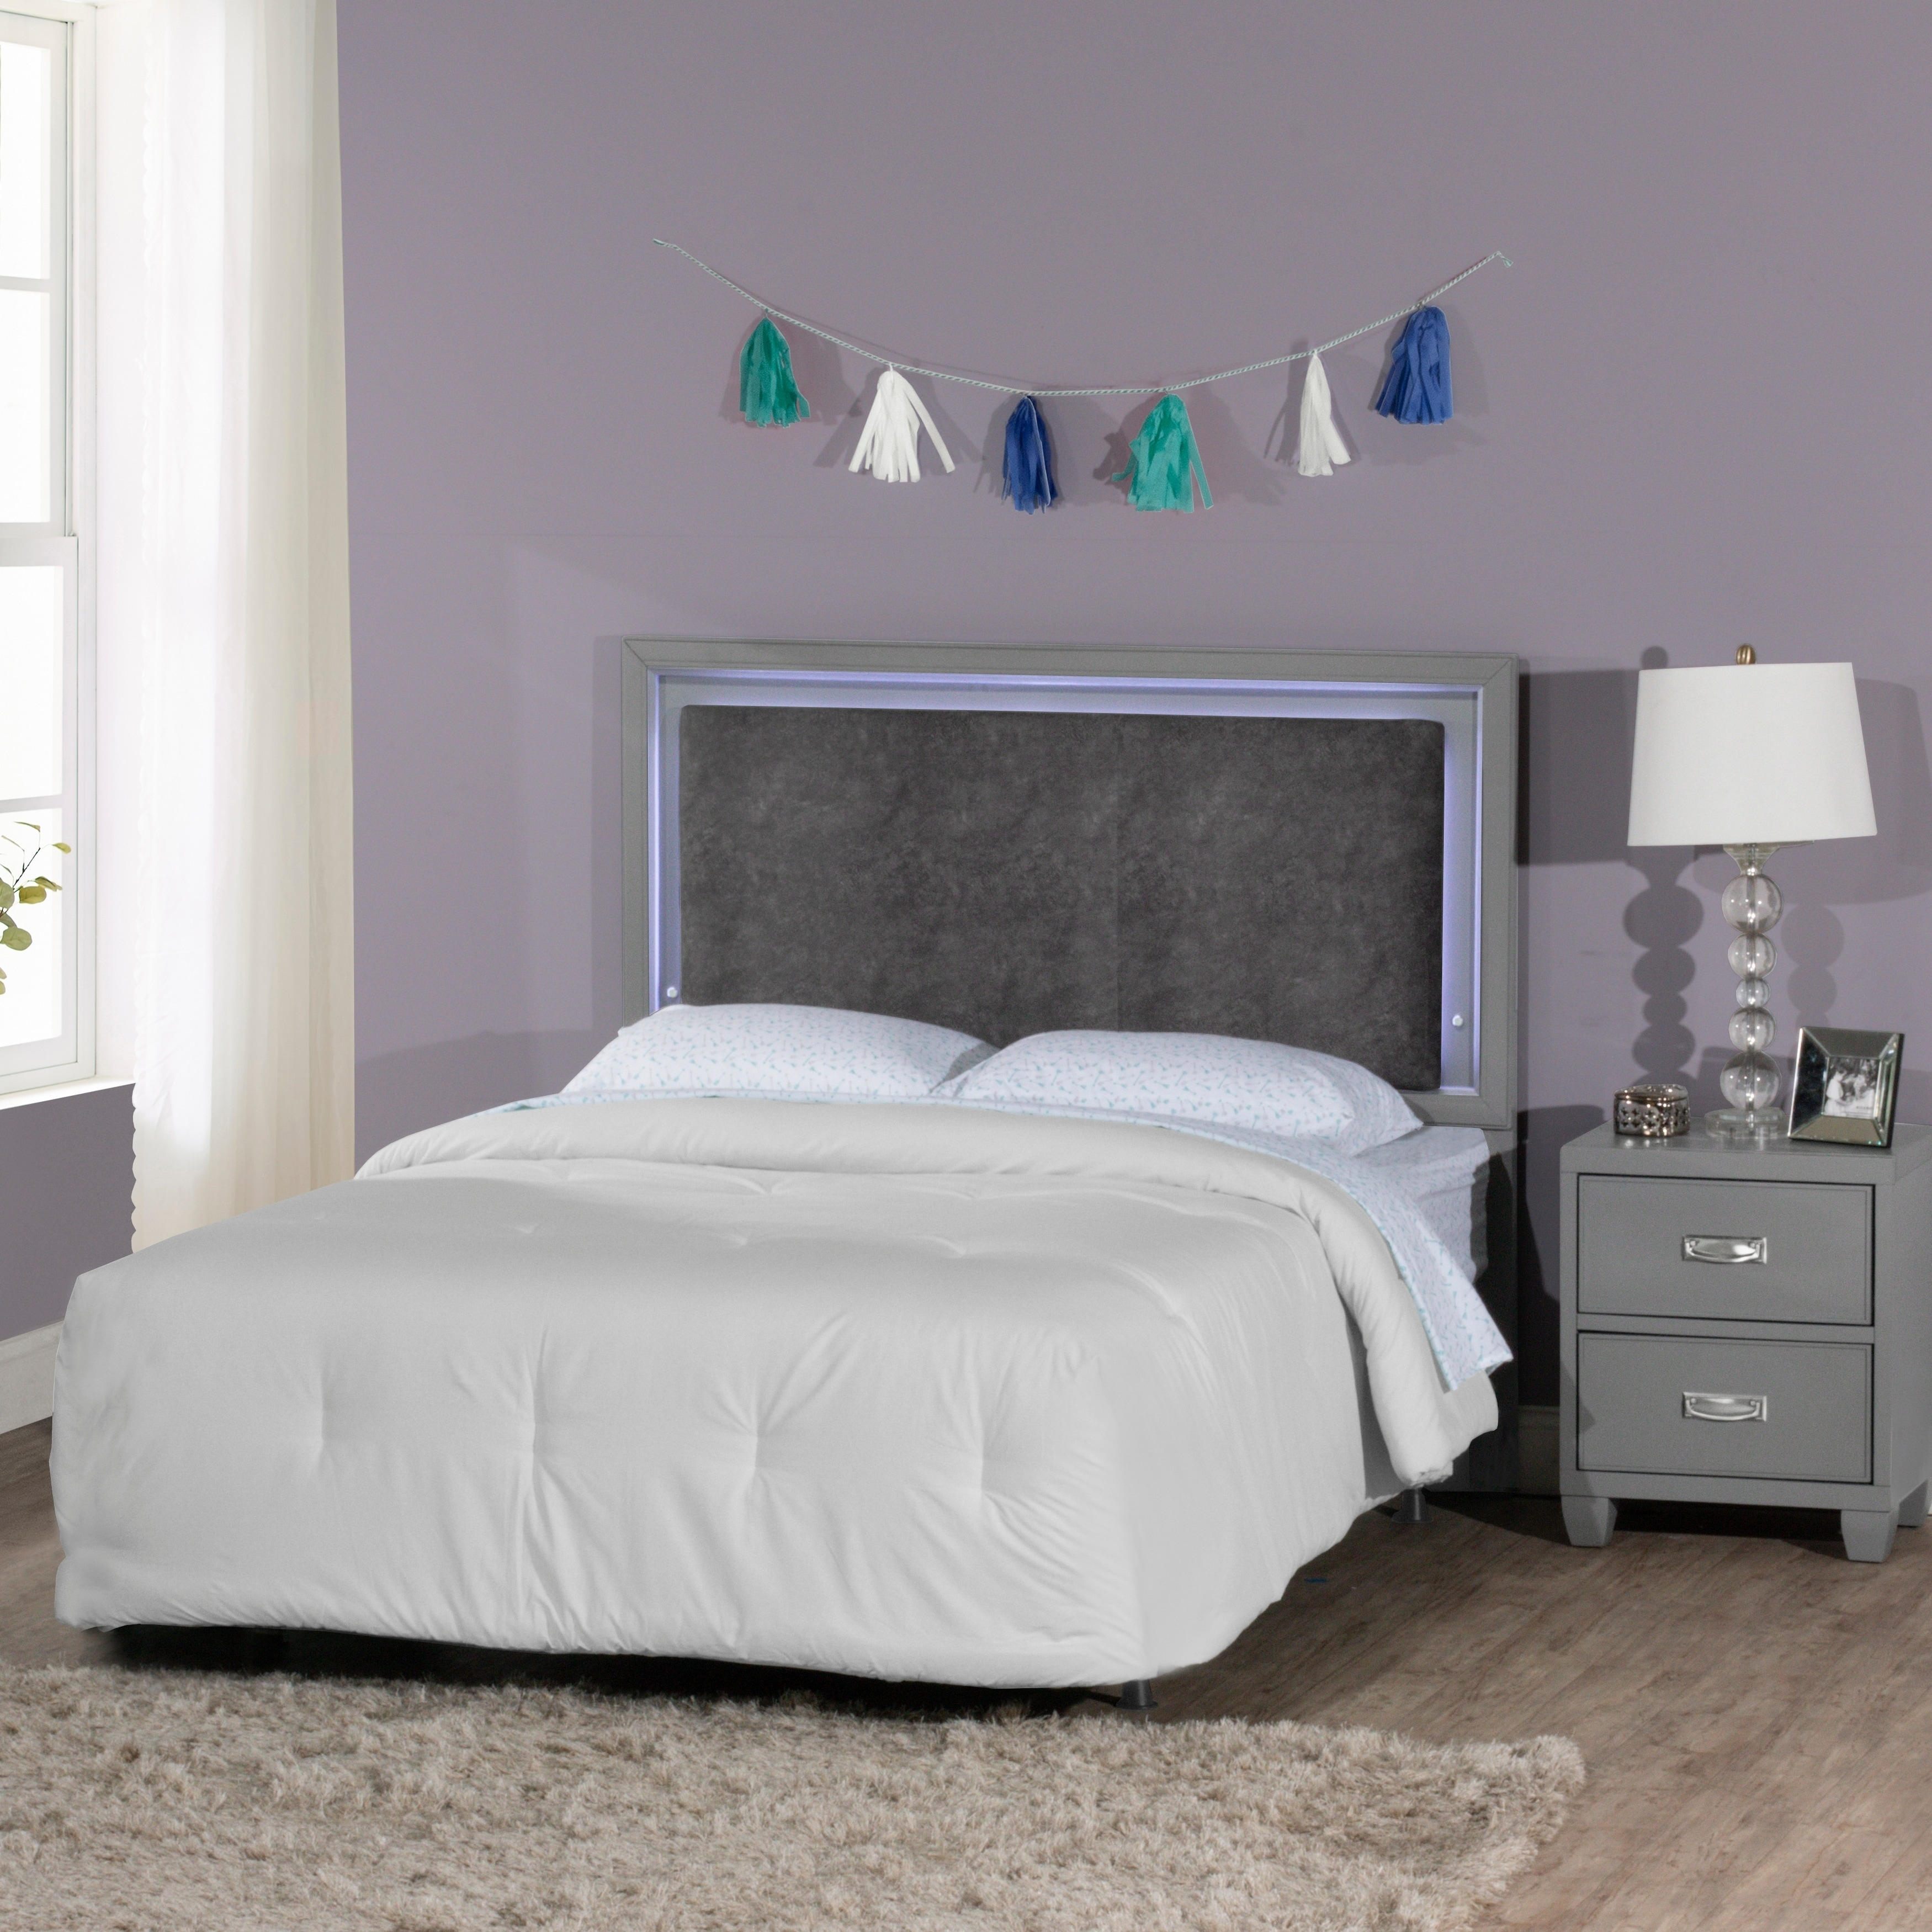 Lyndon Lane Upholstered Panel Led Lighted Headboard And Nightstand Frame Included